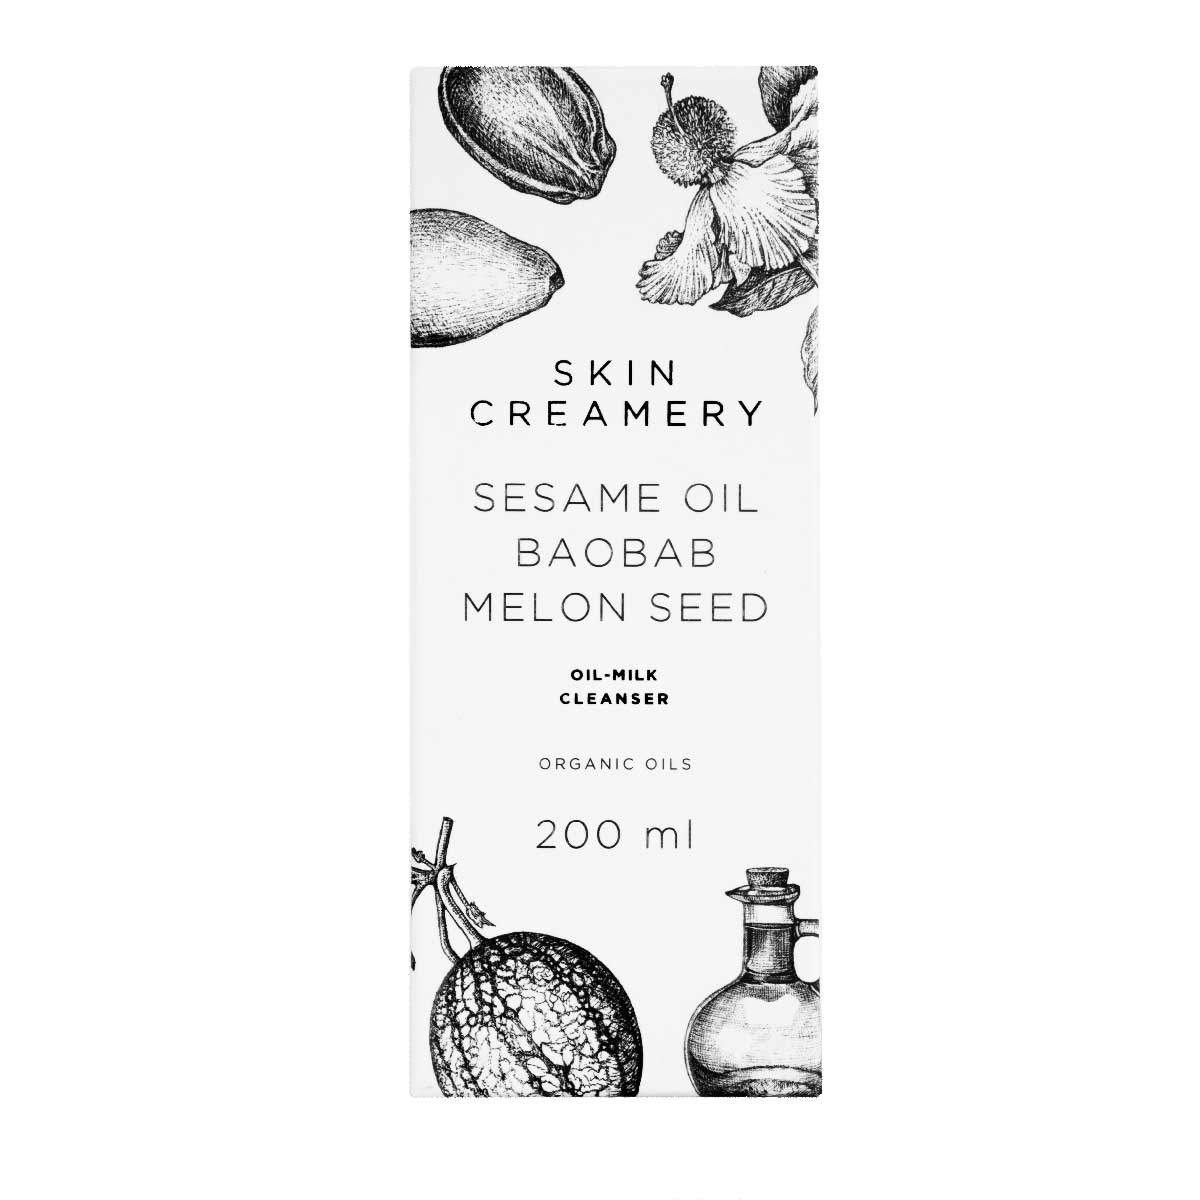 Oil-Milk Cleanser by Skin Creamery